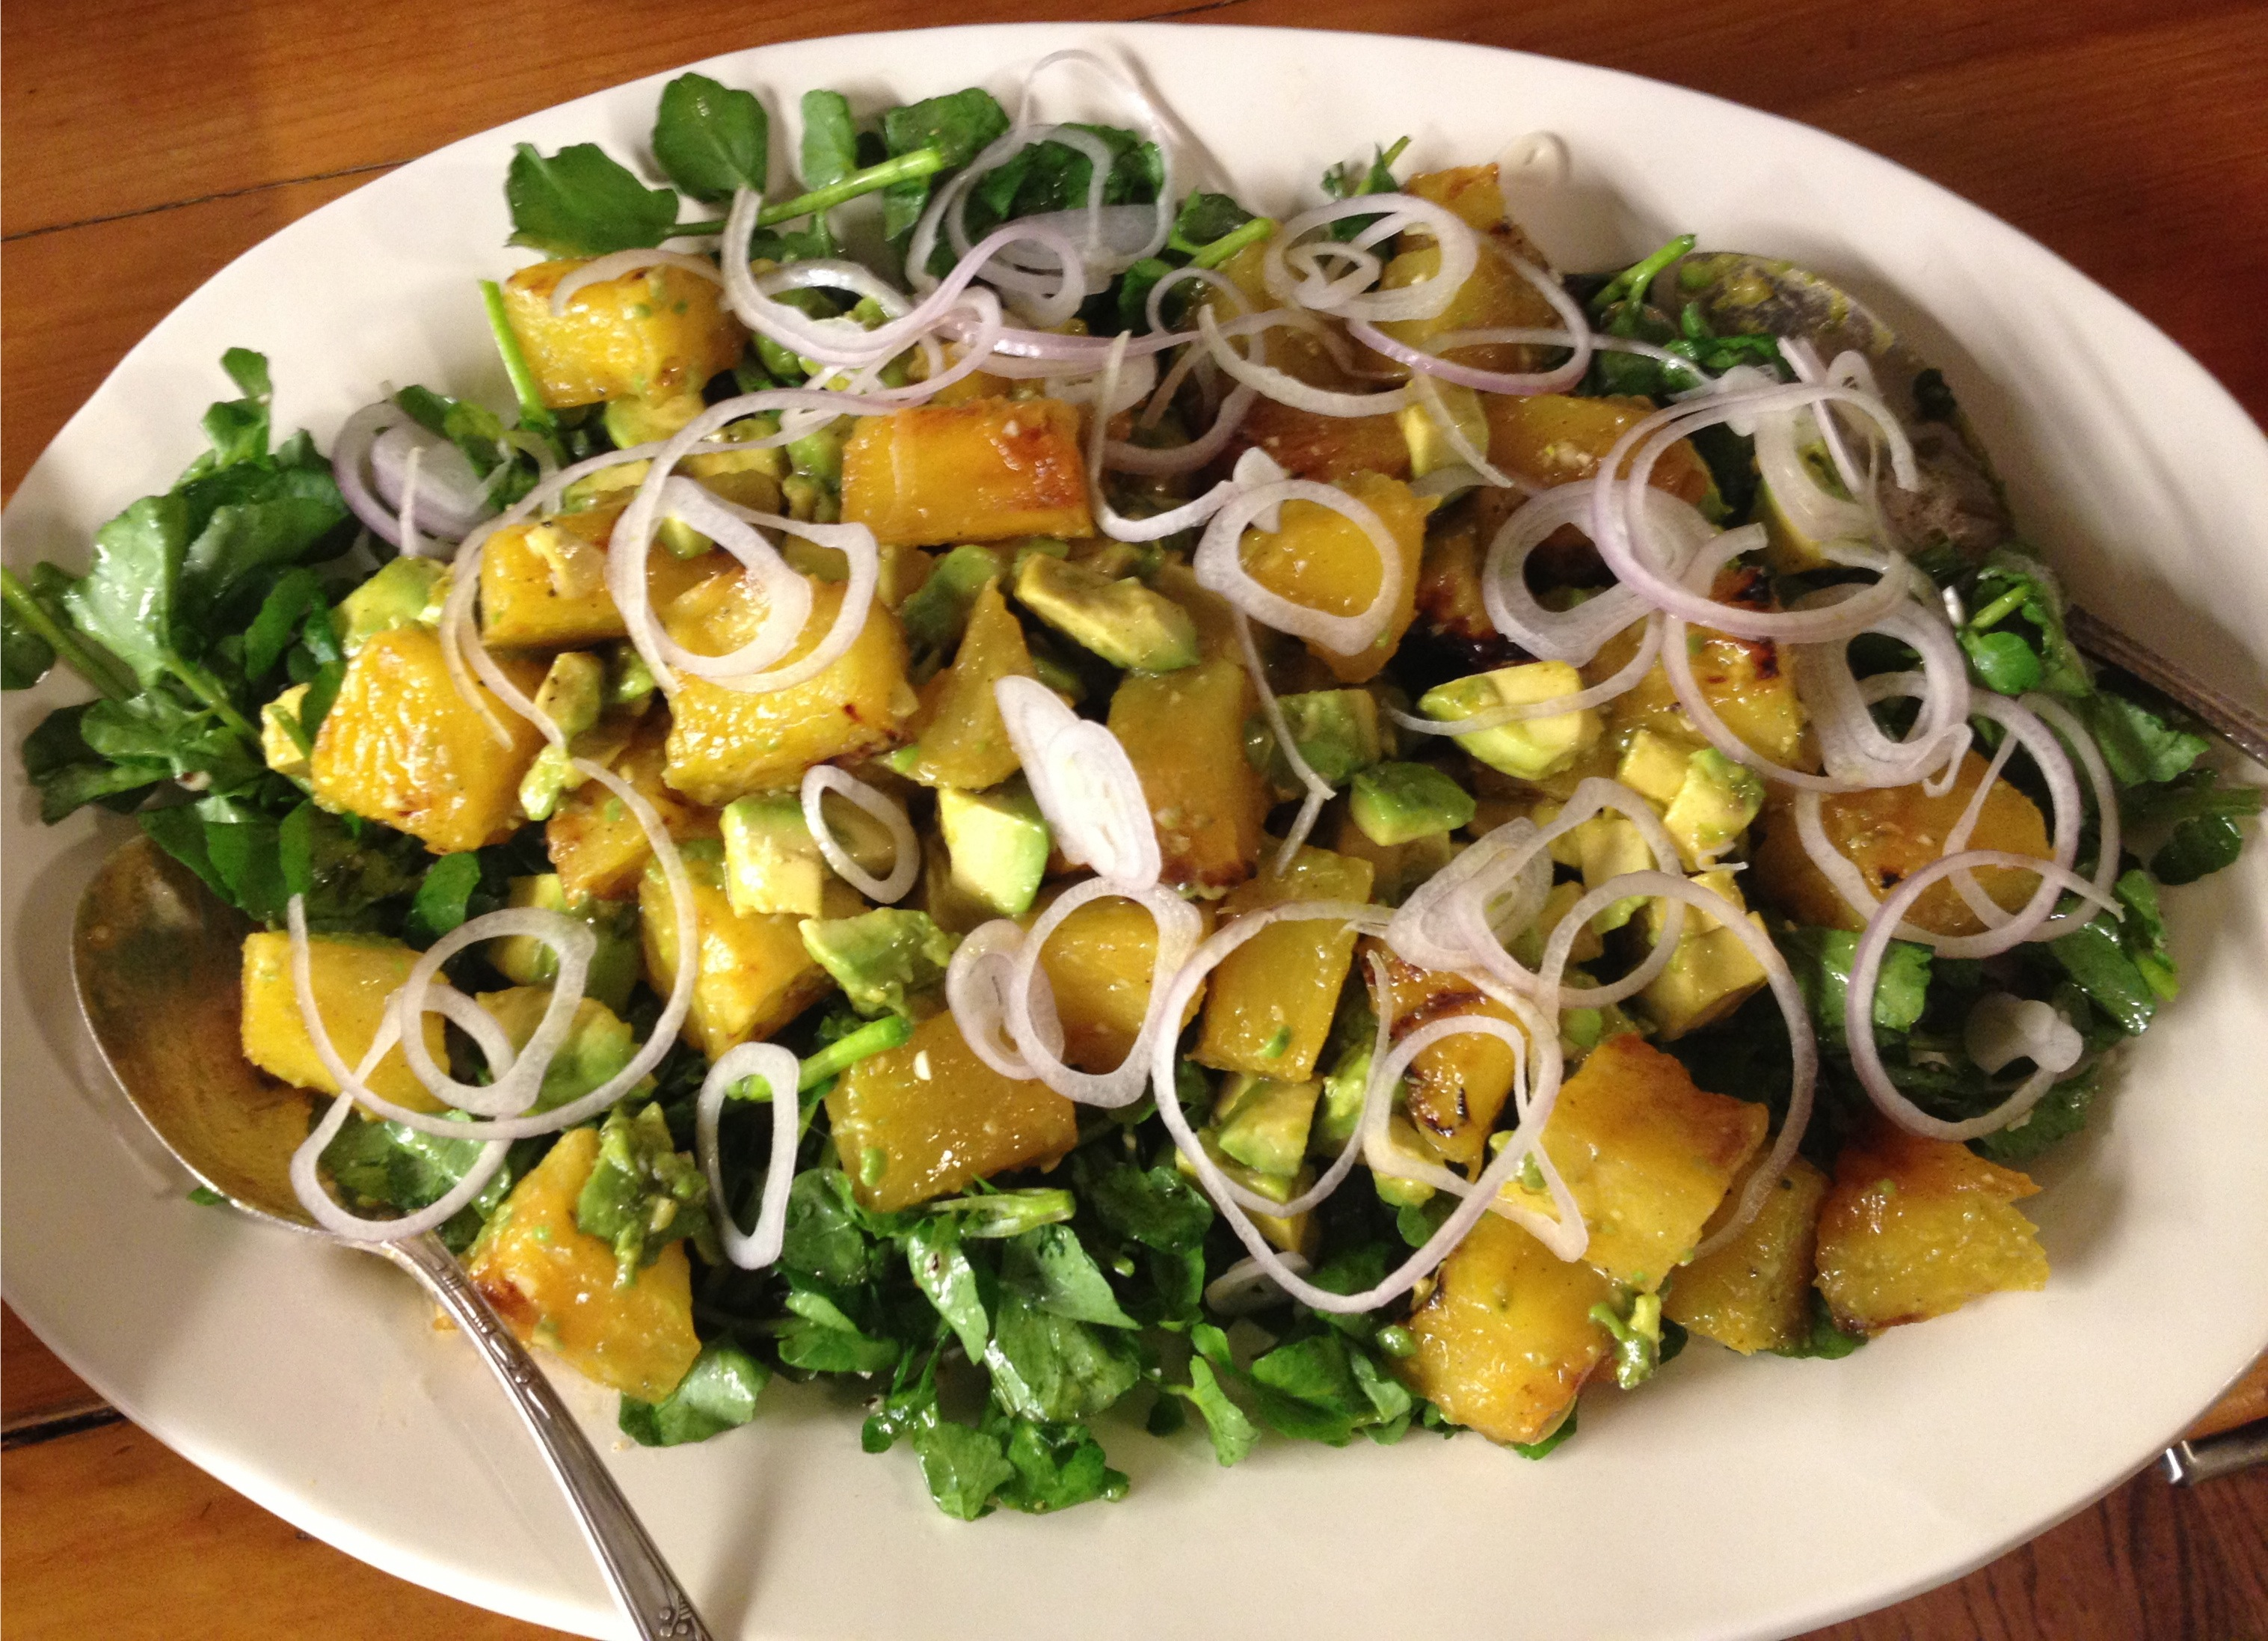 Avocado, Watercress and Pineapple Salad